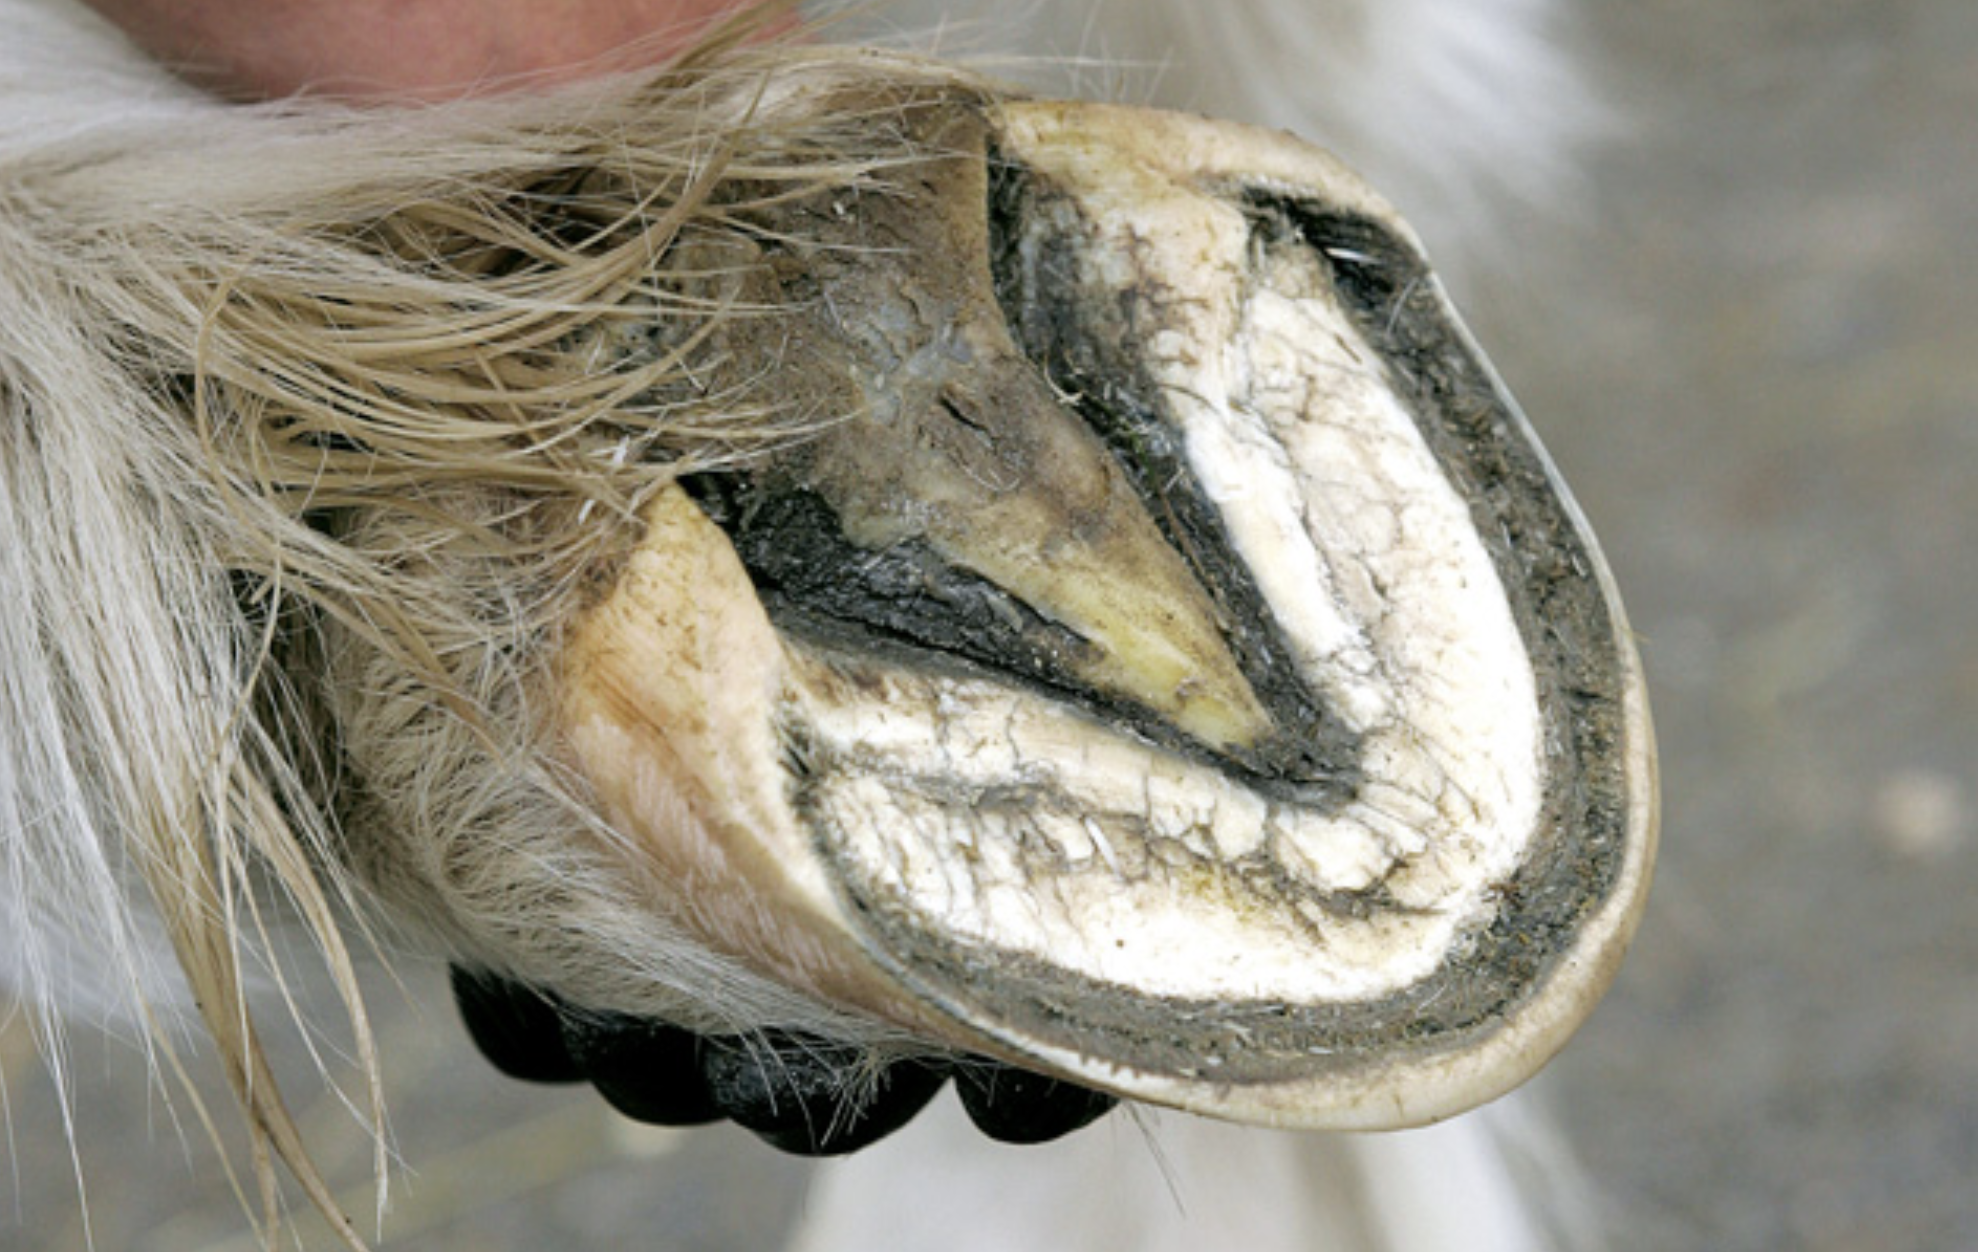 horse hoof with thrush